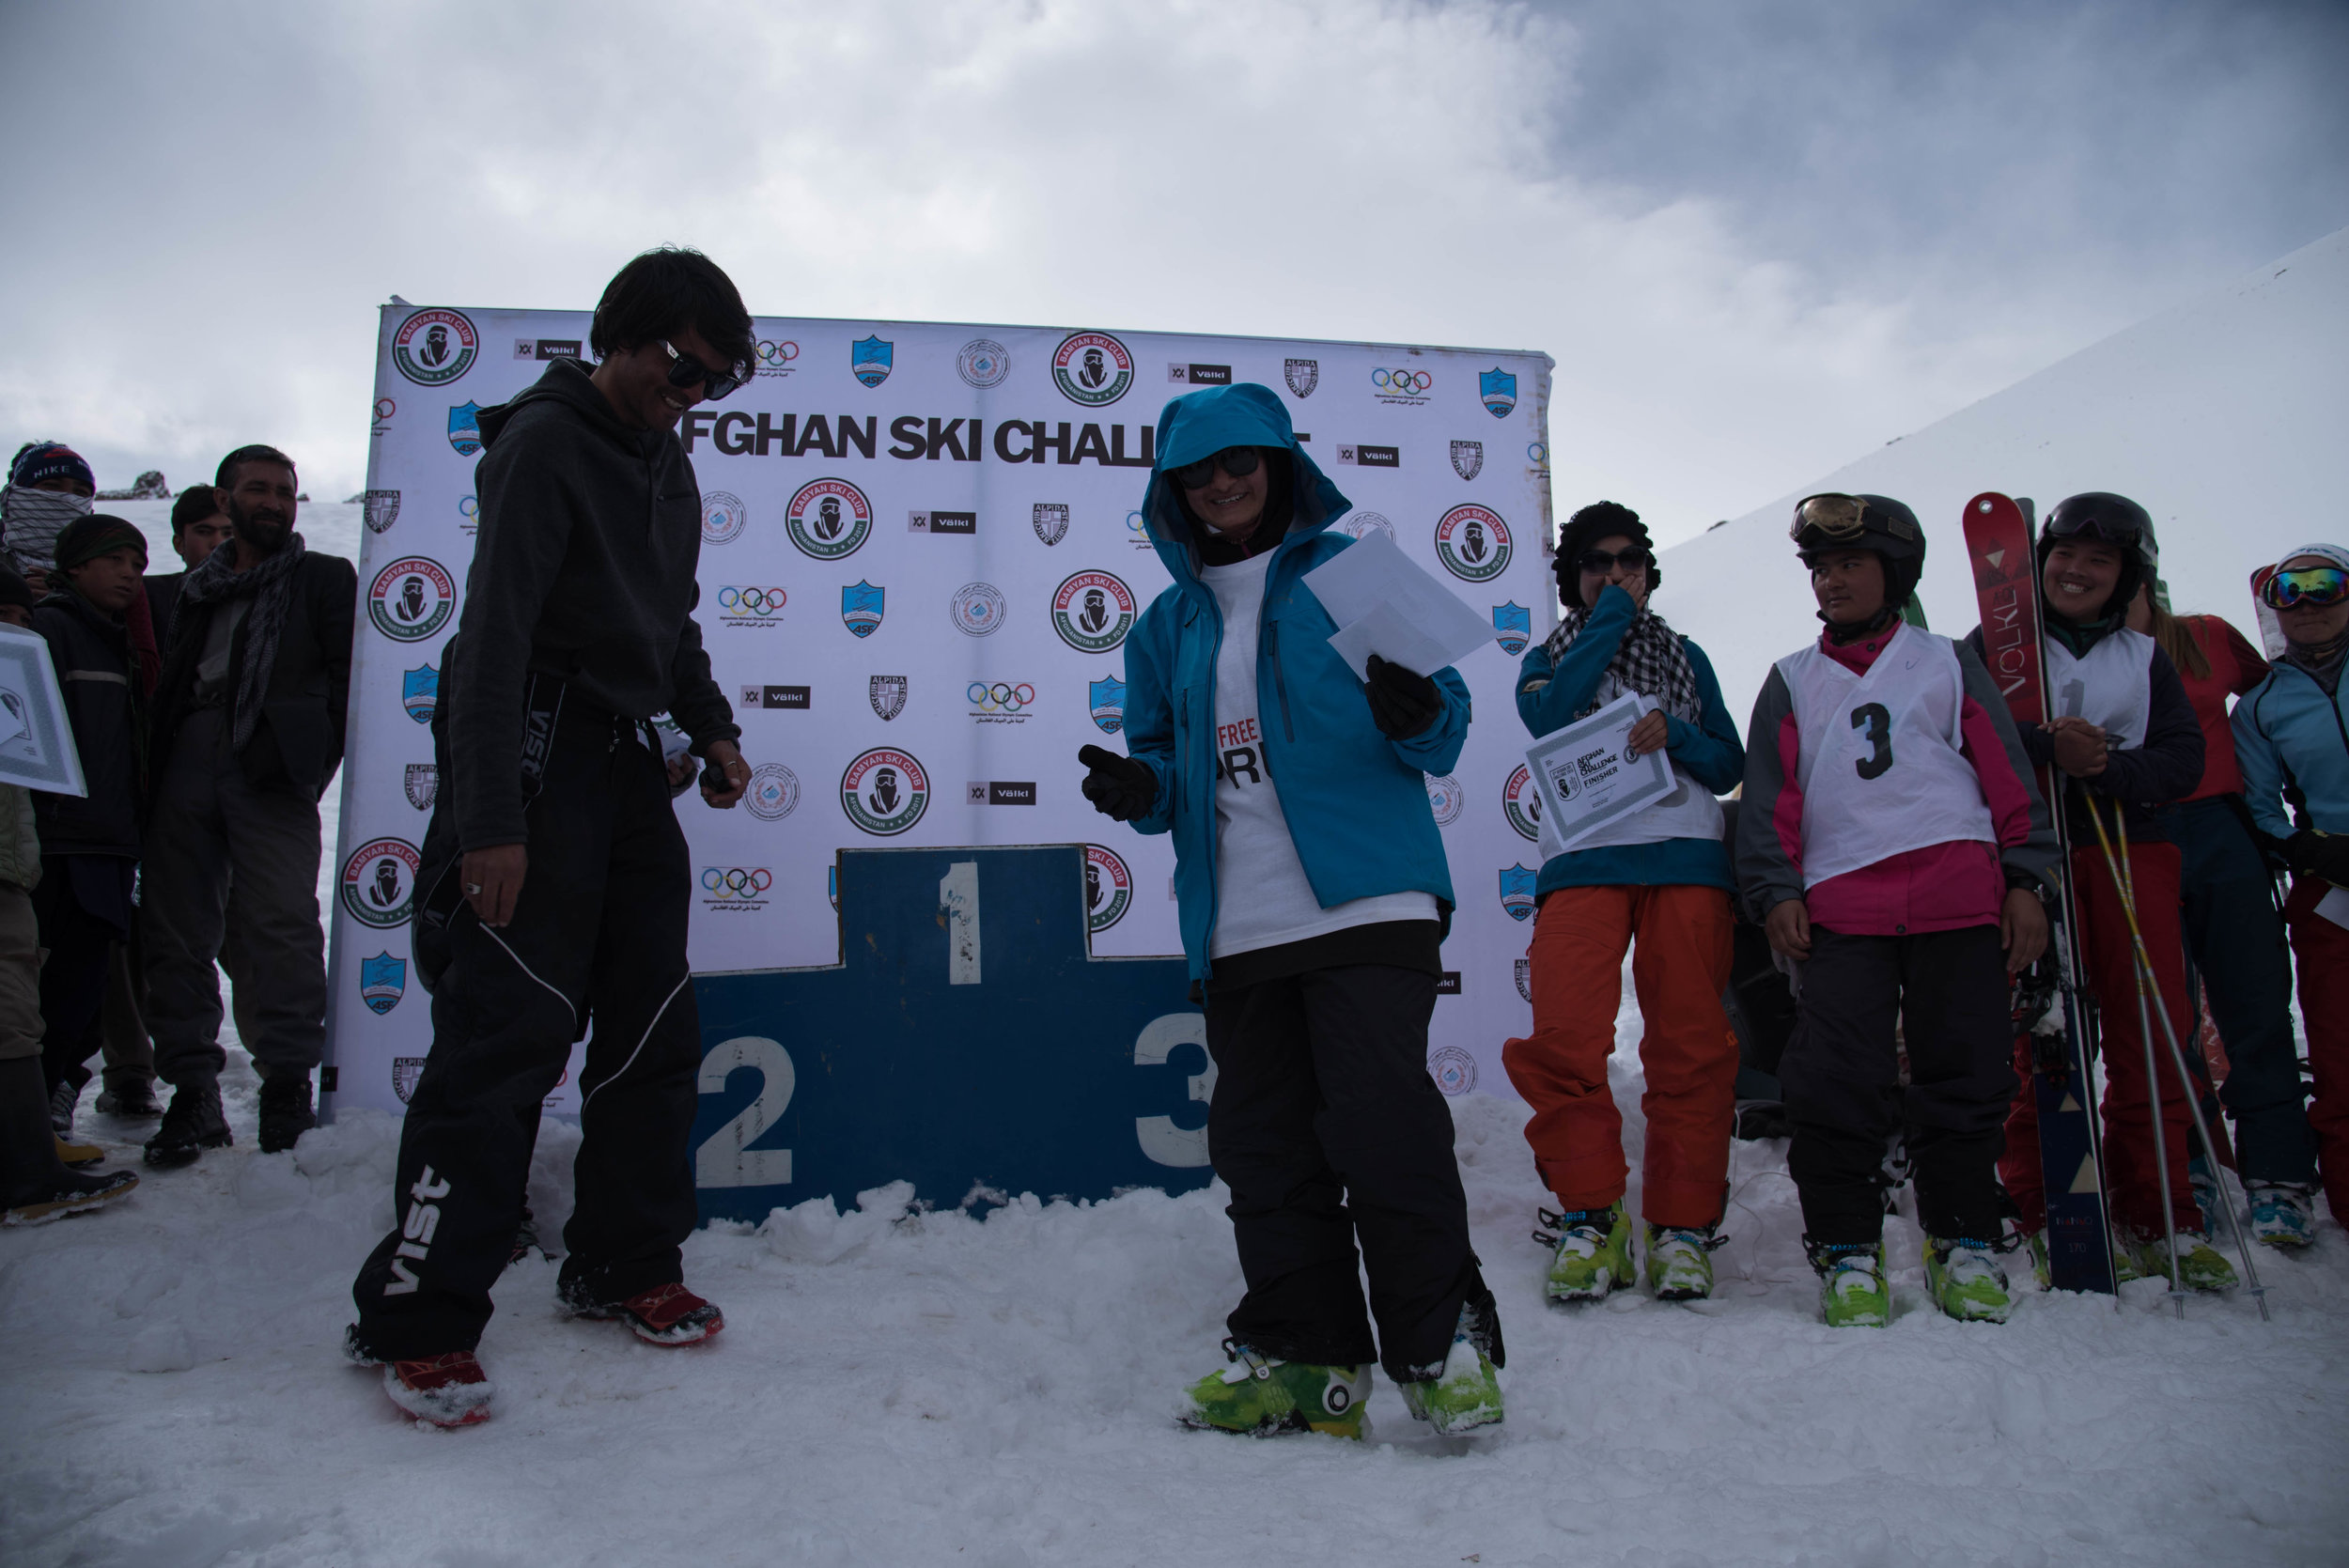 The 8th annual Afghan Ski Challenge.